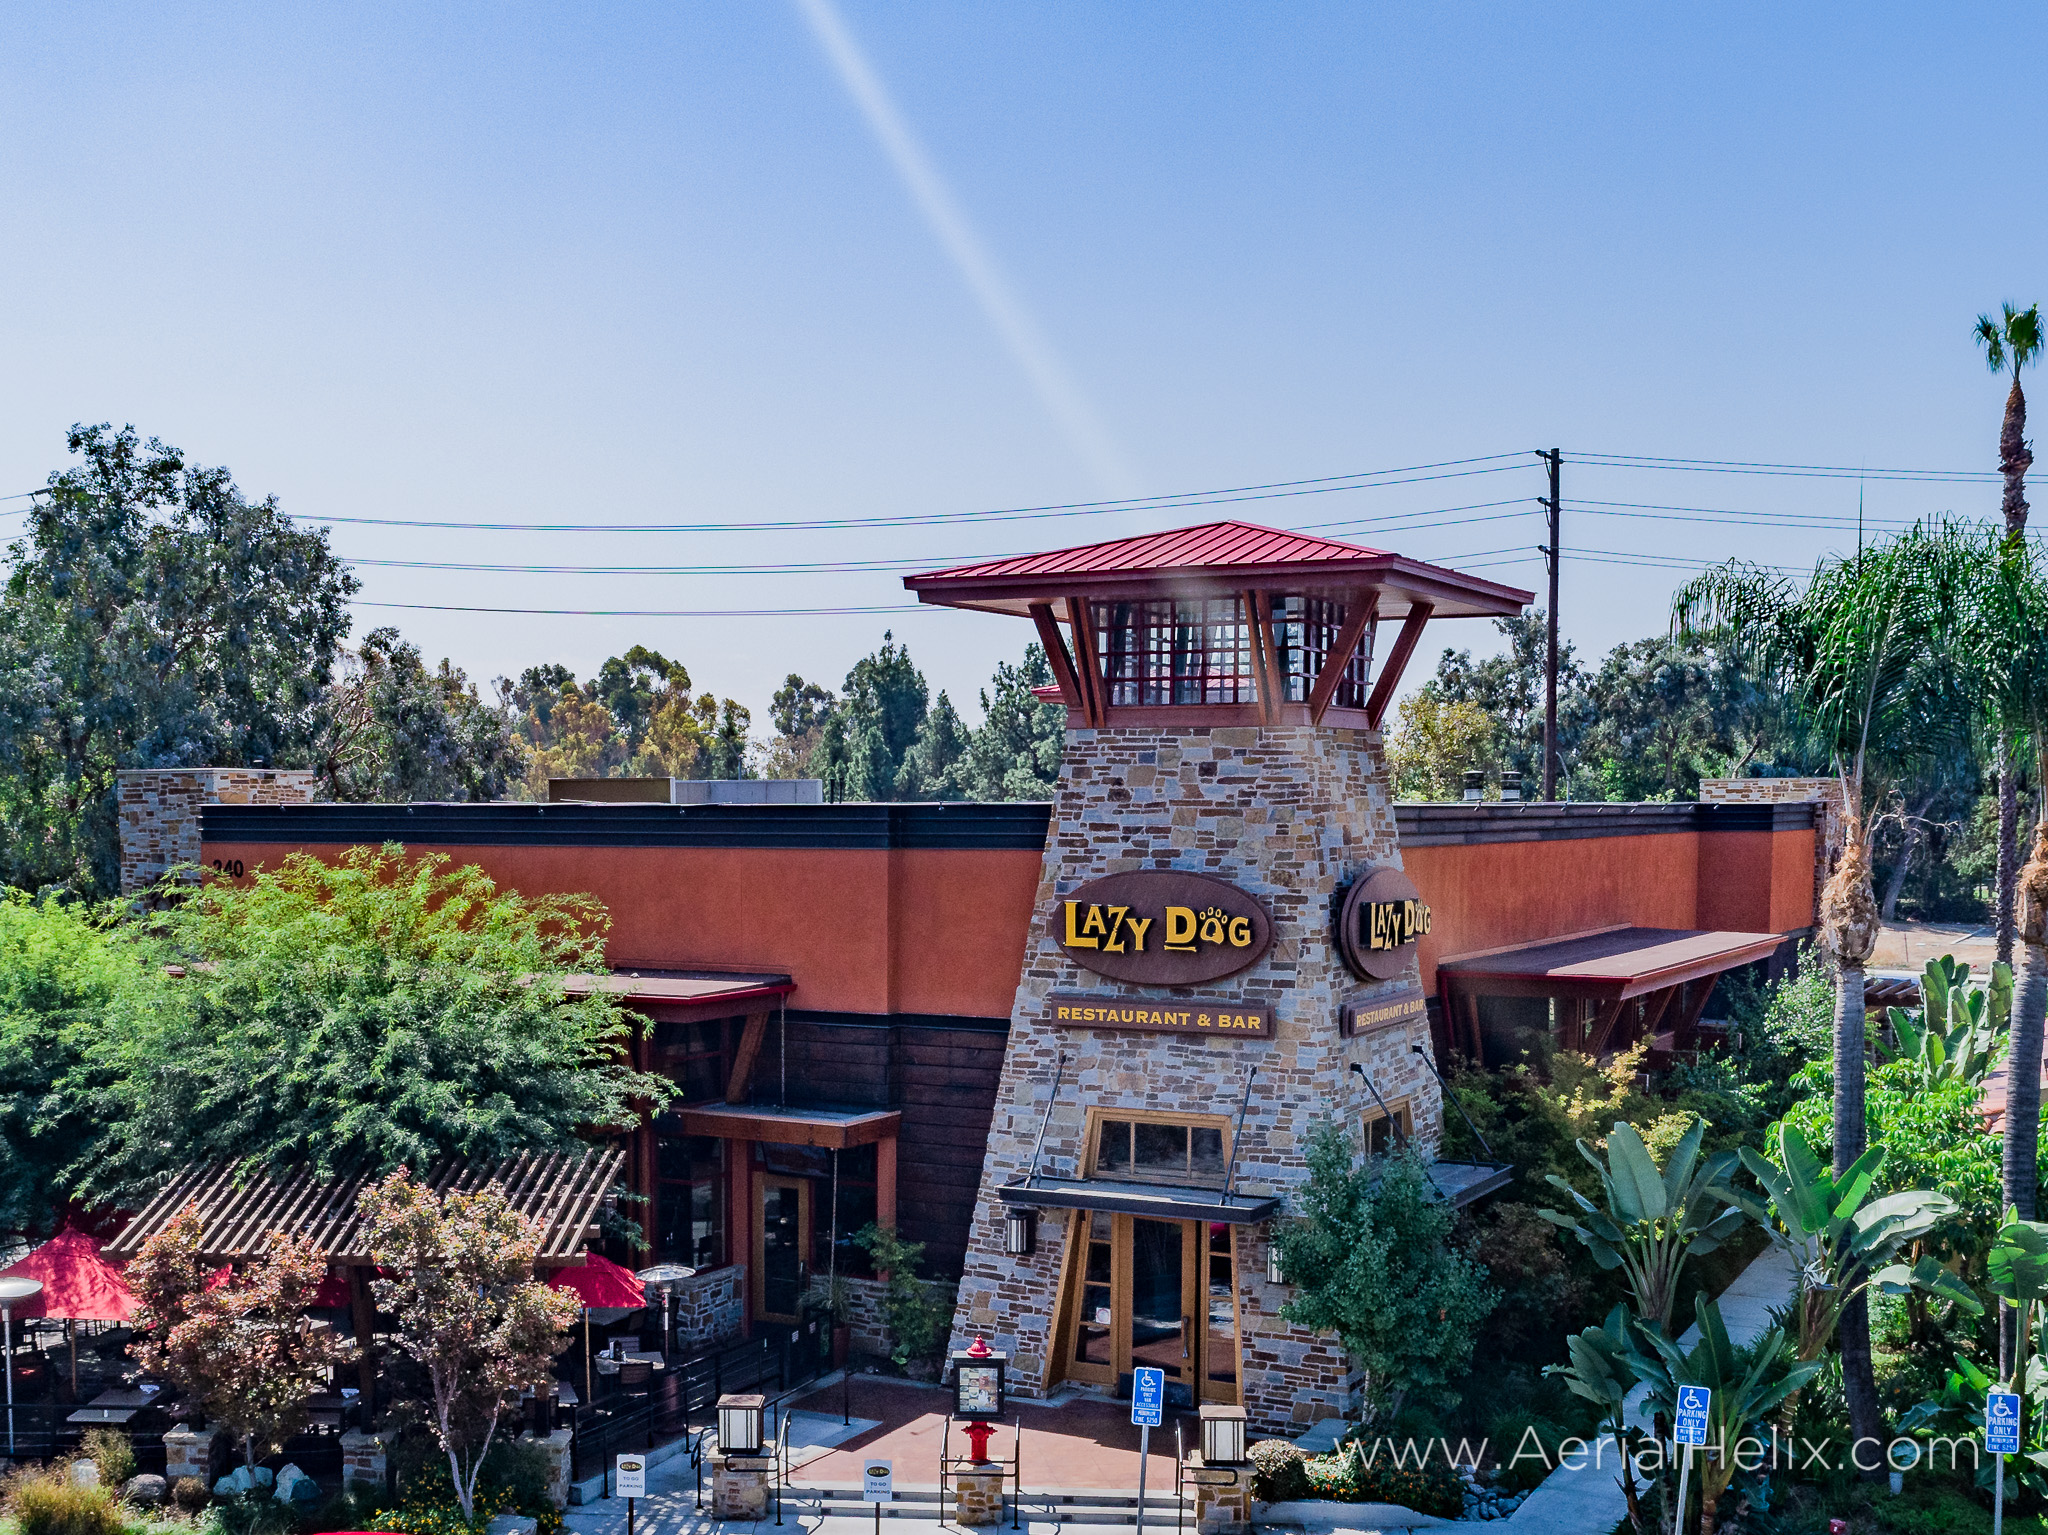 Lazy Dog Cafe - HELIX Commercial Real Estate Aerial Photographer-21.jpg